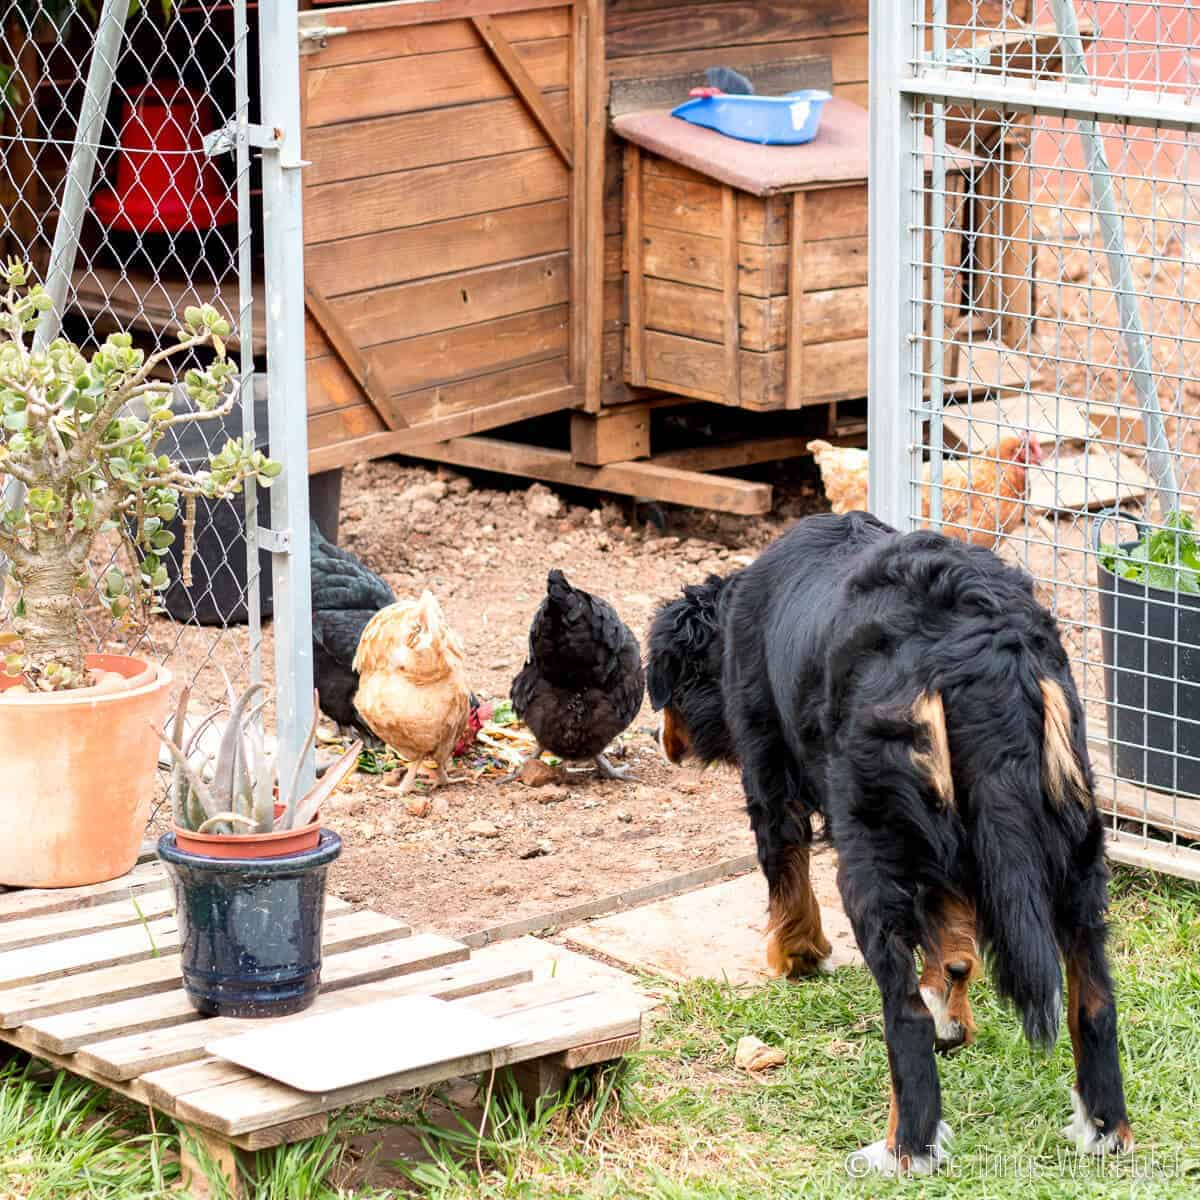 A dog looking at a group of hens